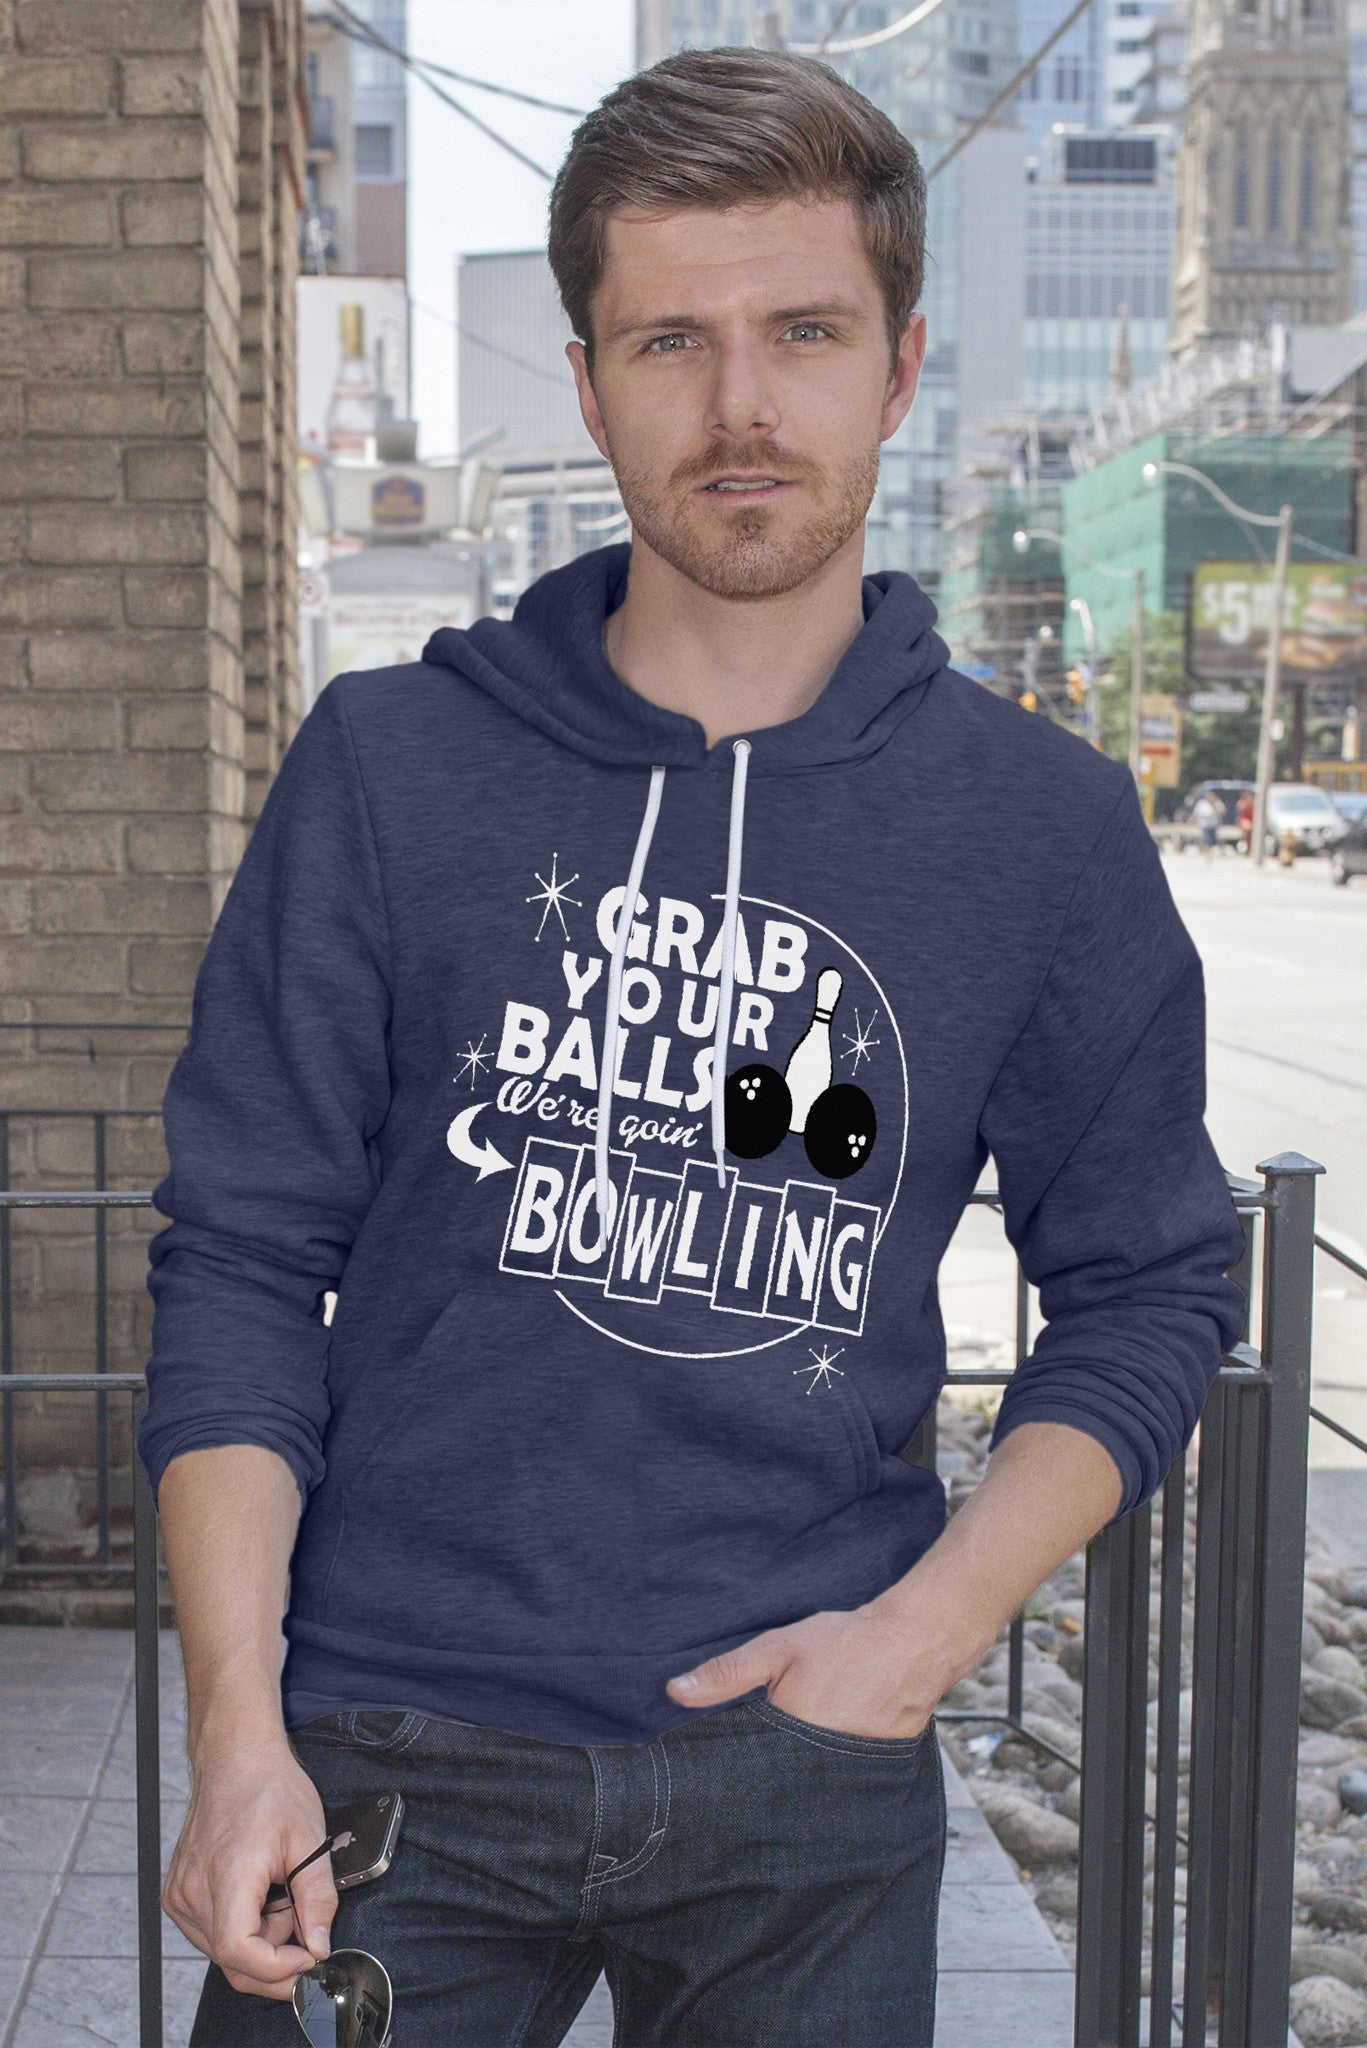 FunkyShirty Grab Your Balls Where goin'Bowling Men)  Creative Design - FunkyShirty